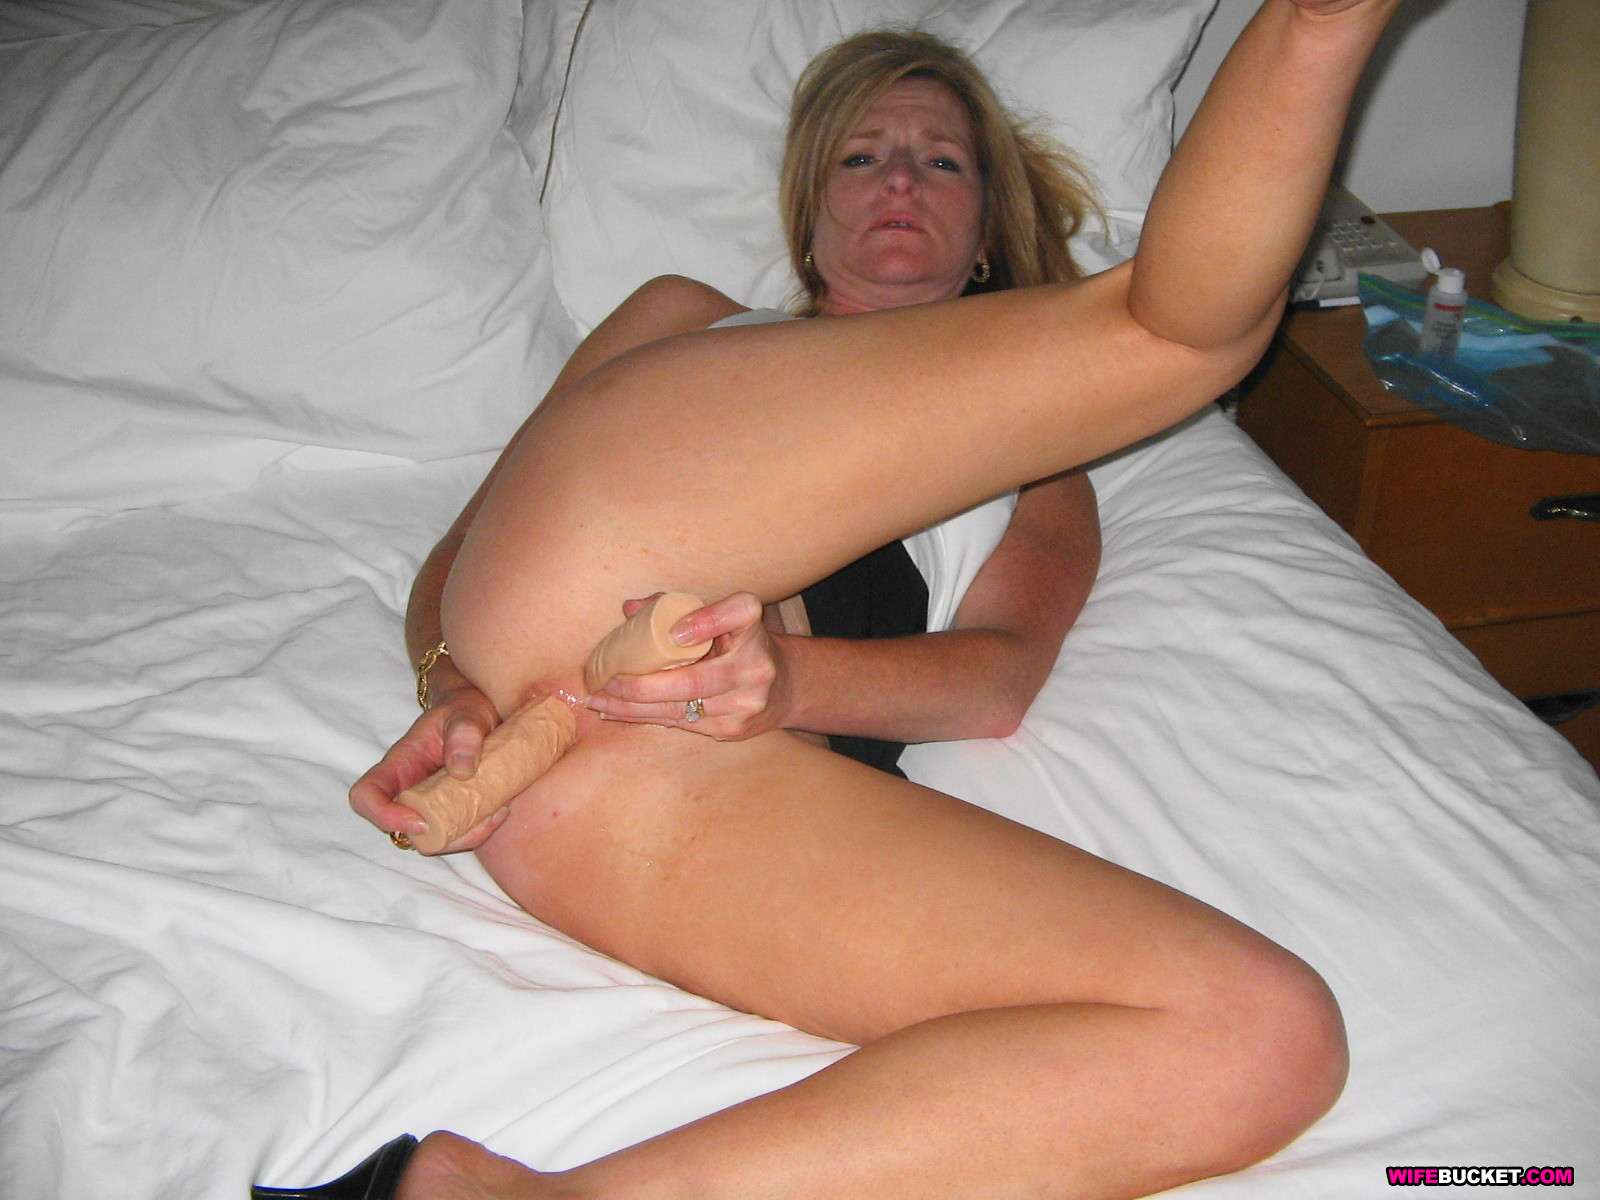 Drunk slut masturbating